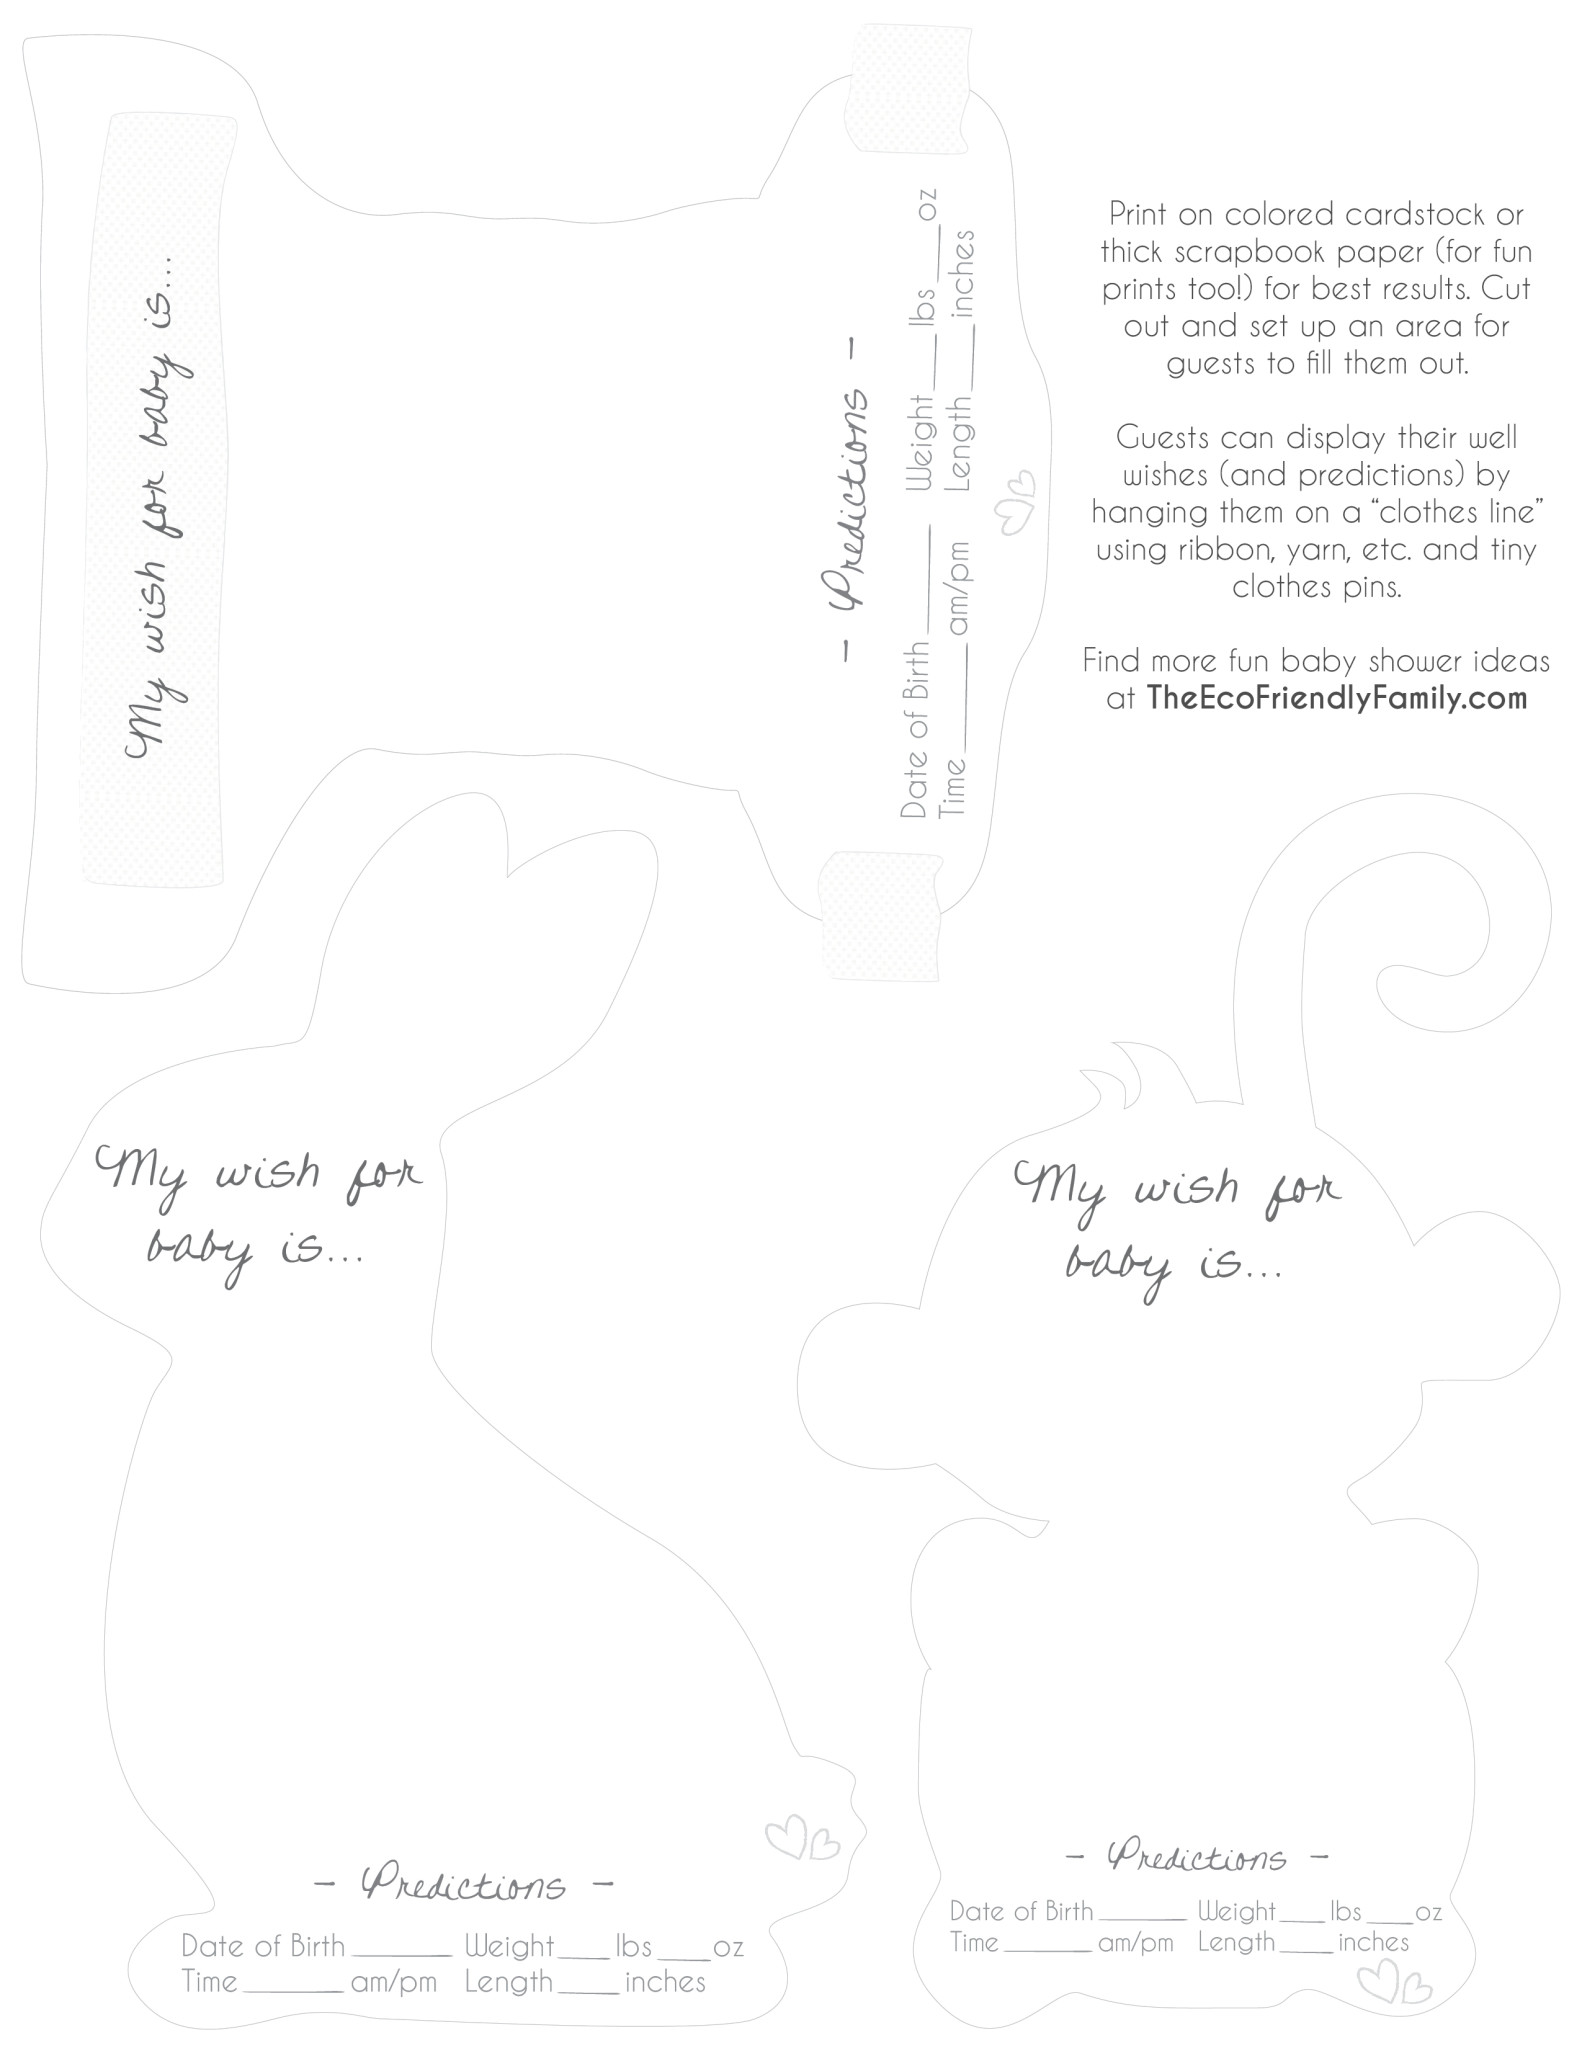 Well Wishes & Predictions for Baby { Free Printable } - The Eco ...